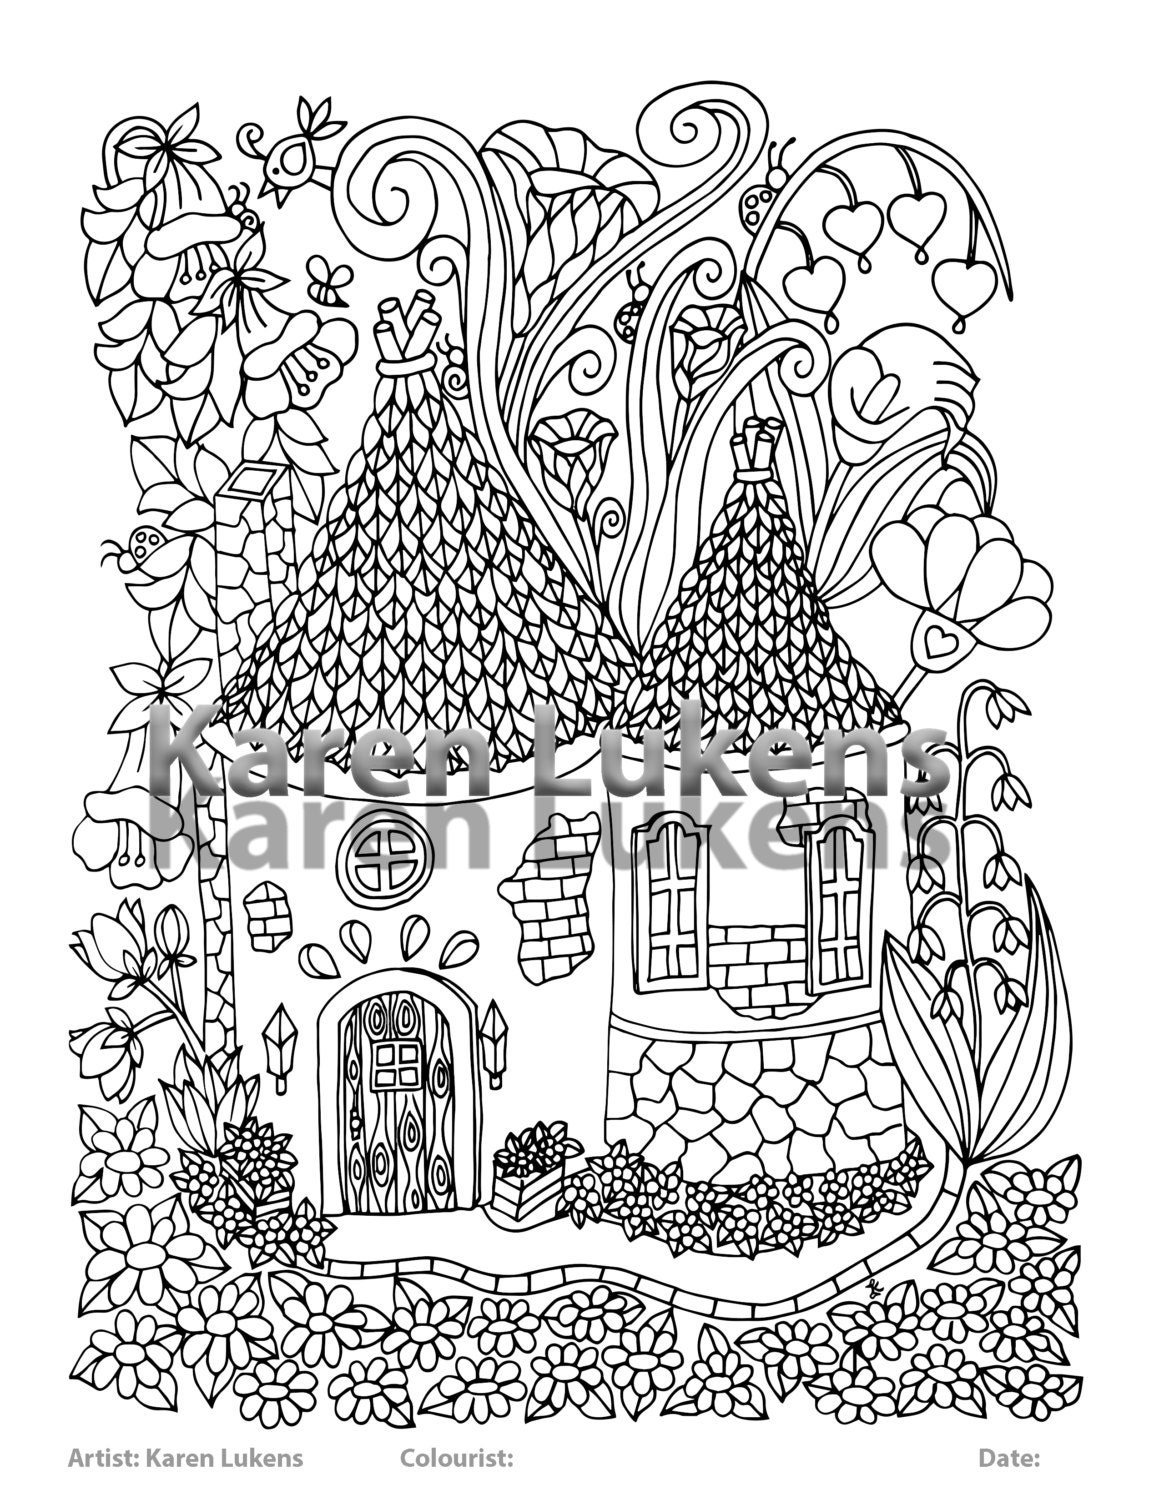 Coloring book download zip - Coloring Book Download Zip 18